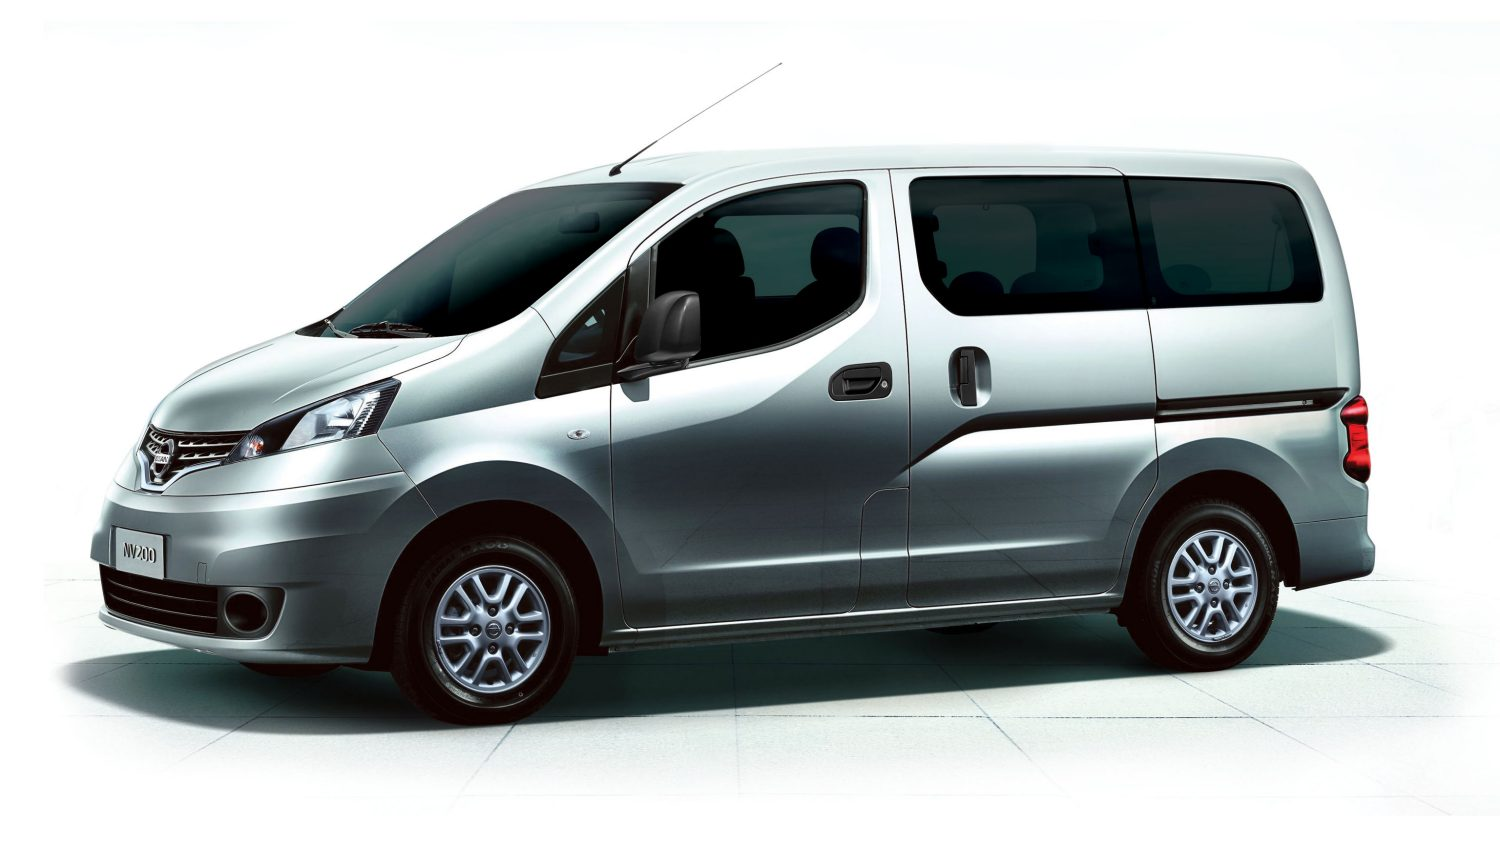 new nissan nv200 nissan nv200 combi for sale nec. Black Bedroom Furniture Sets. Home Design Ideas